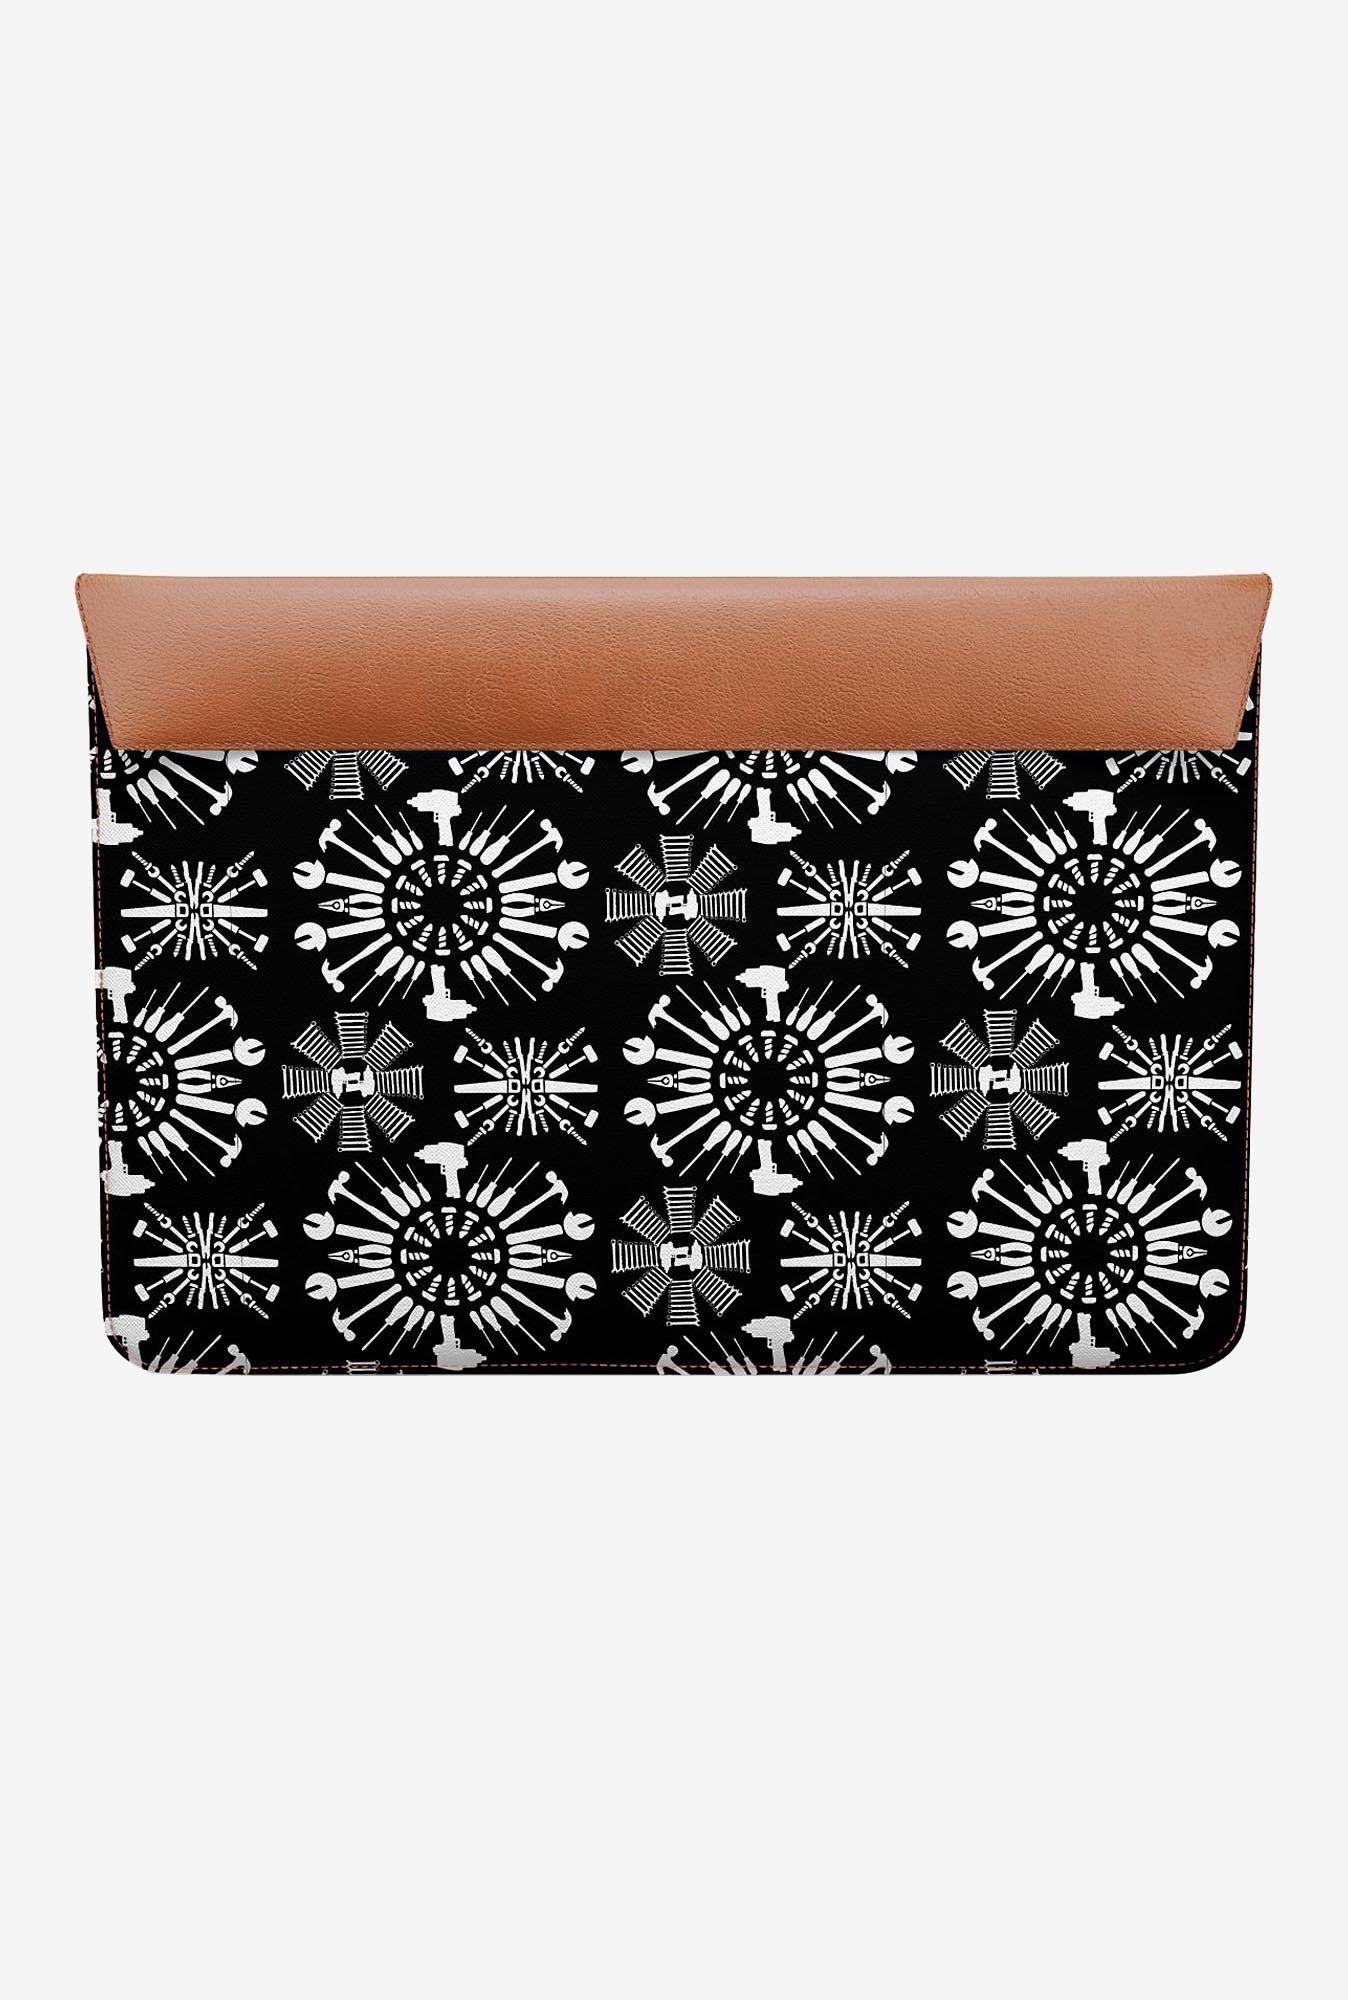 DailyObjects Tools Black MacBook Air 11 Envelope Sleeve